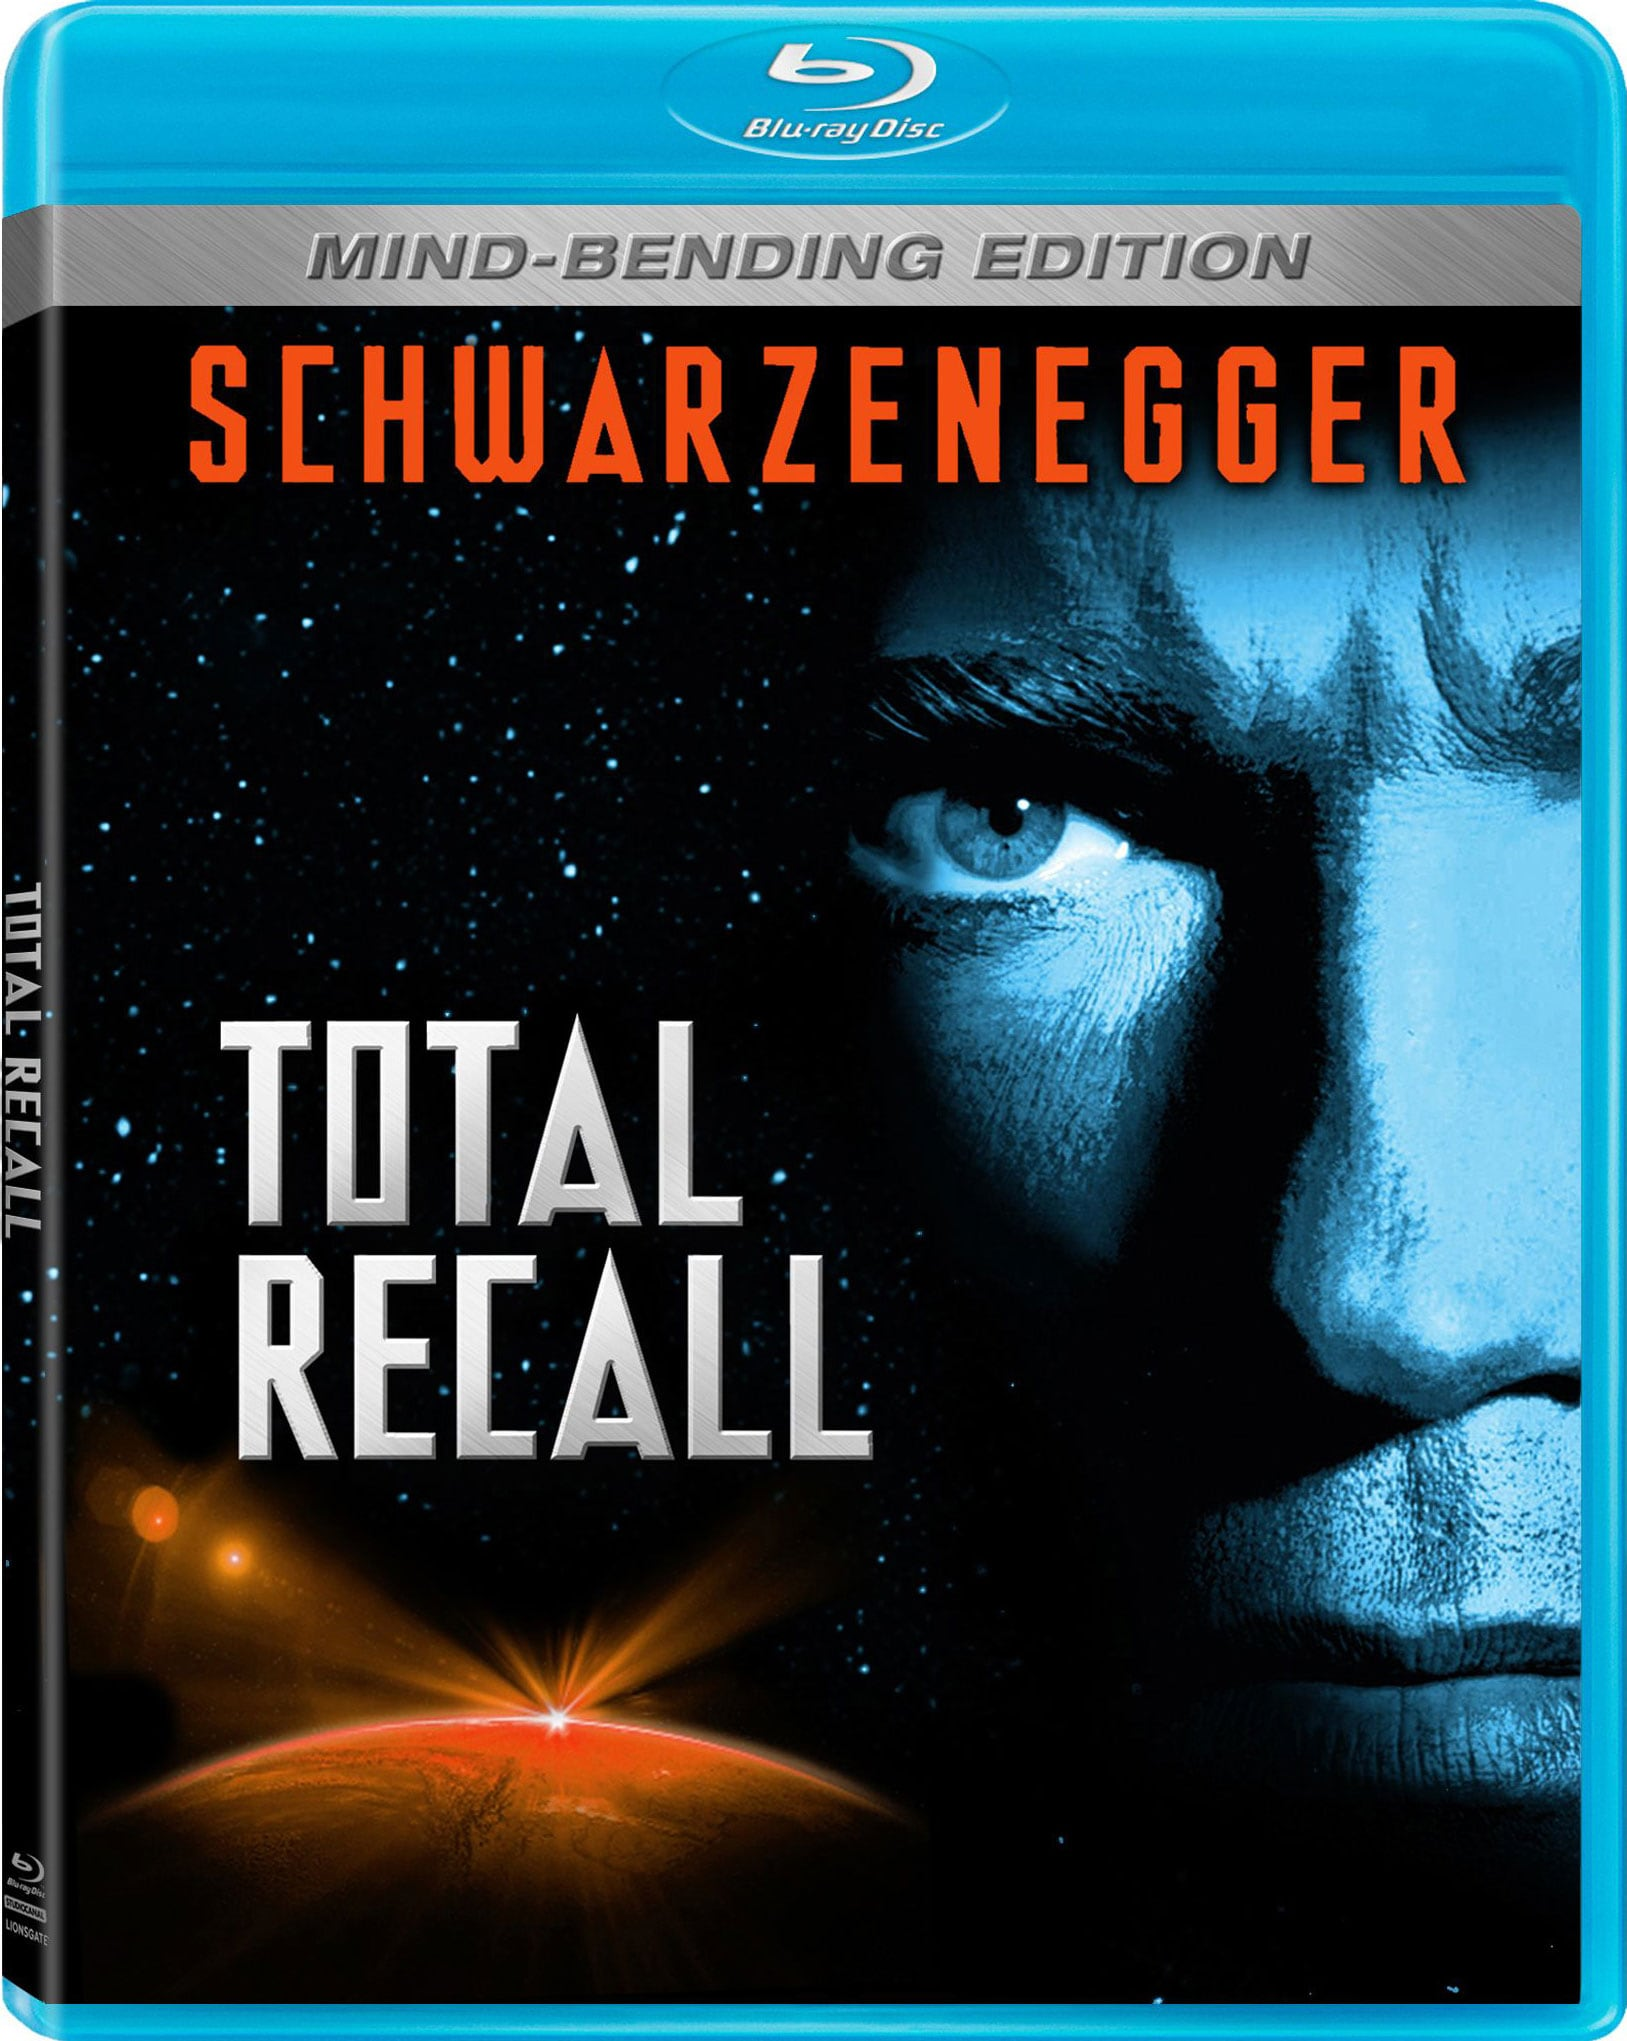 Total Recall (Mind-Bending Edition) (Blu-ray Disc)